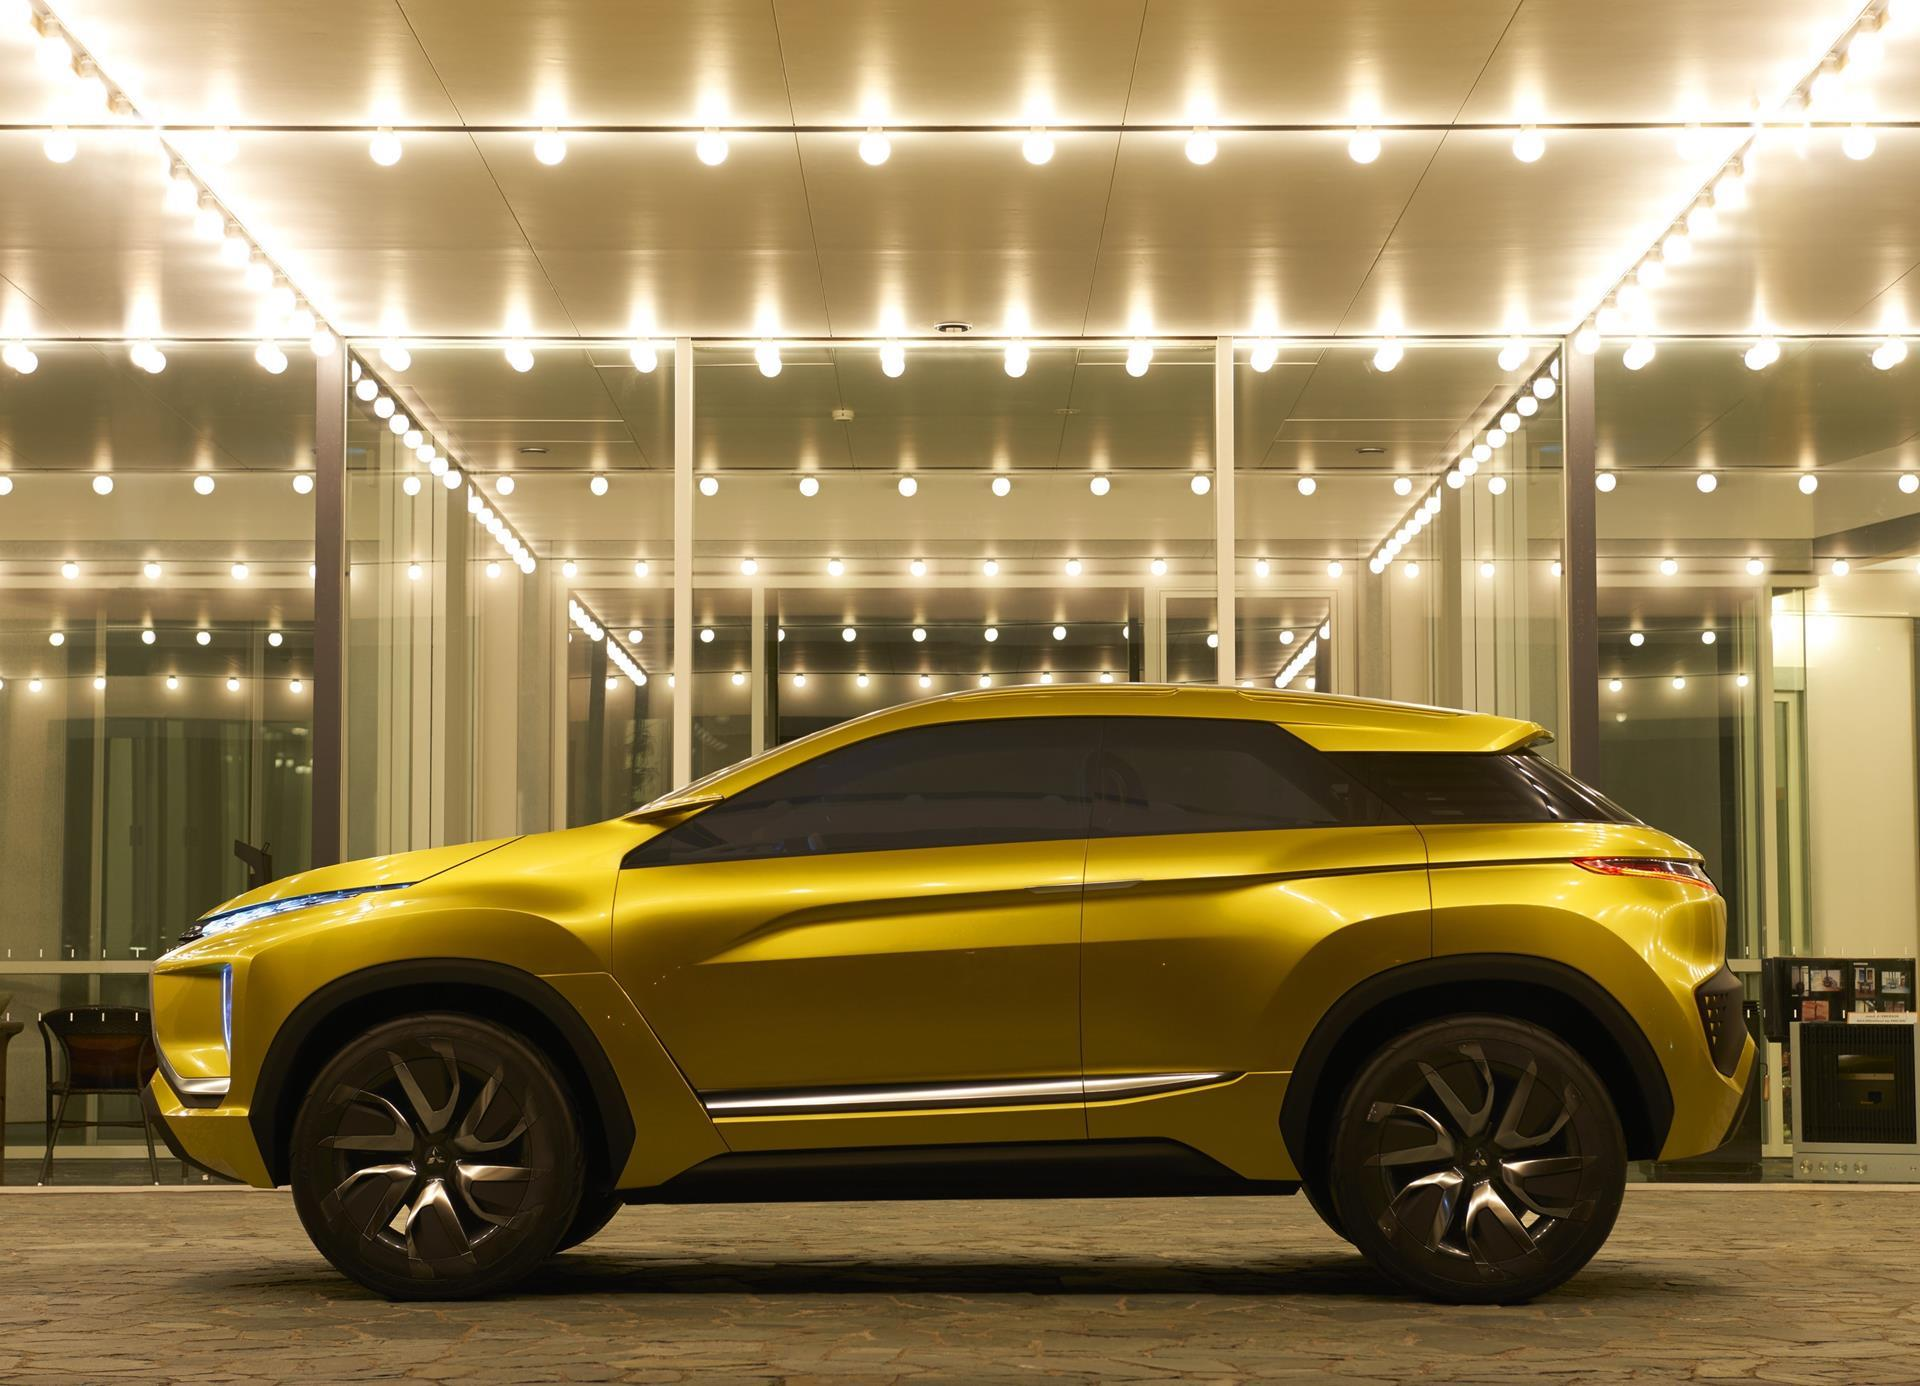 Mitsubishi eX Concept pictures and wallpaper